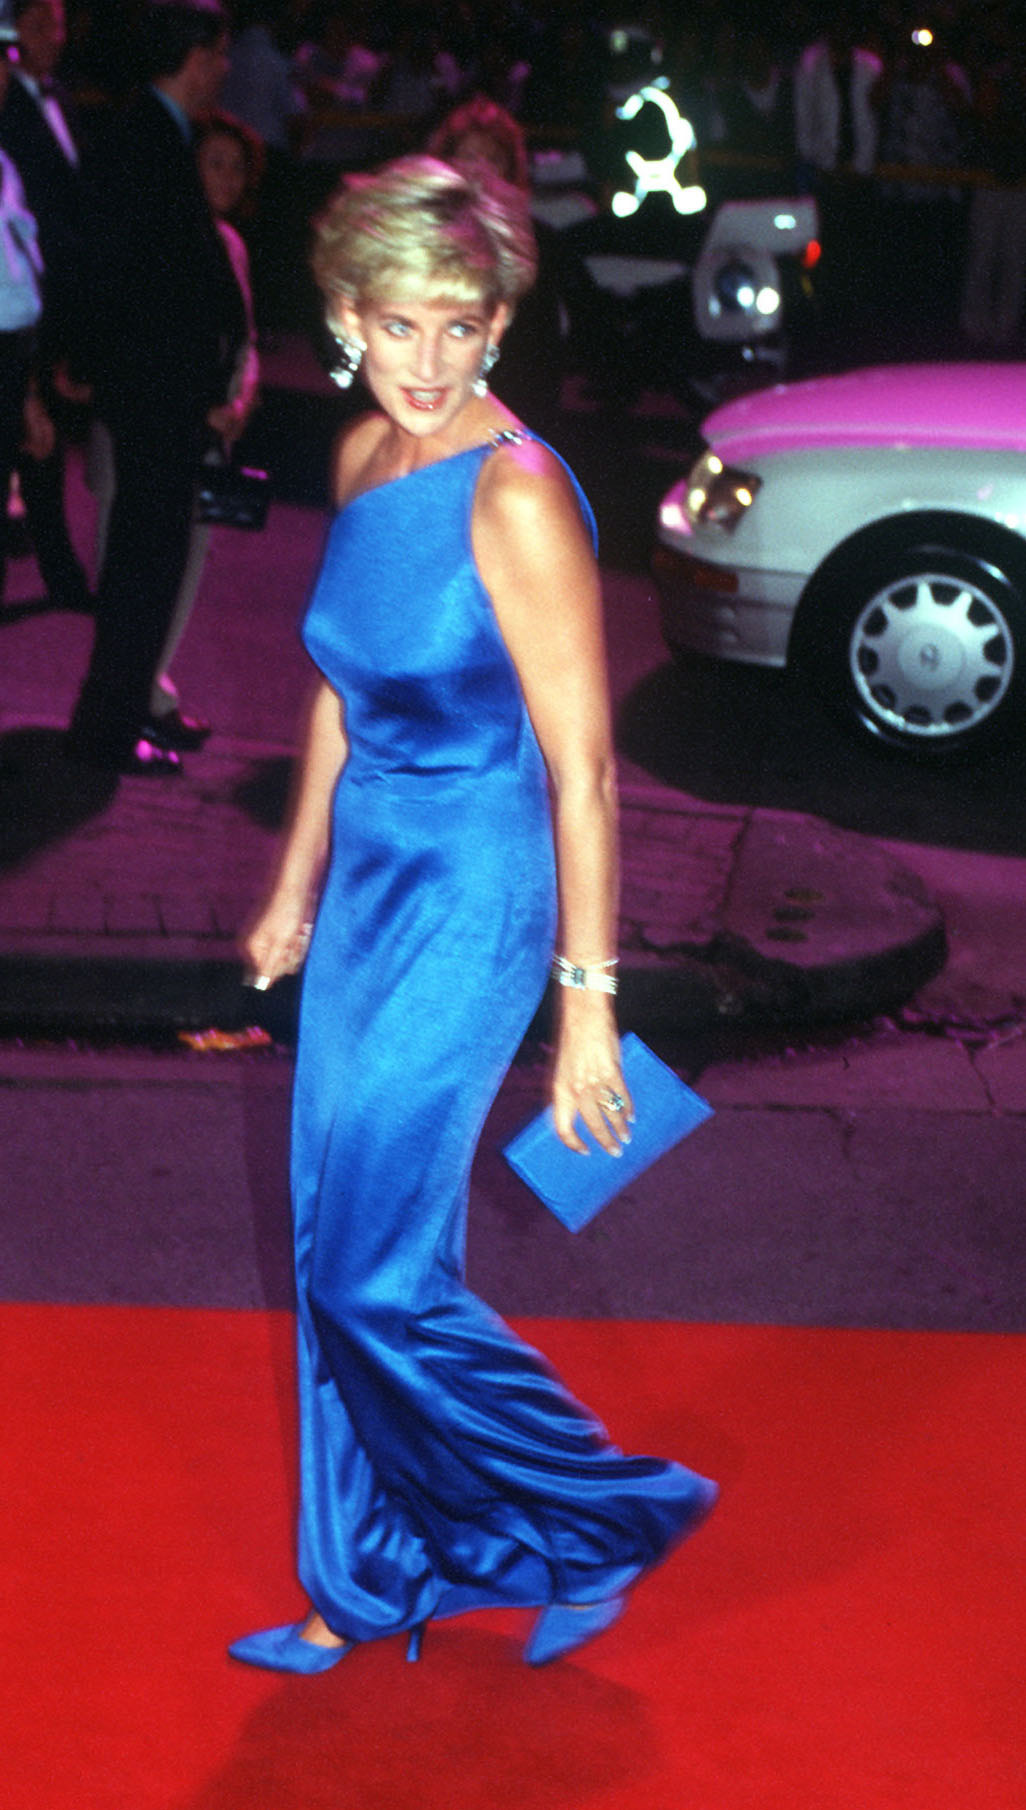 November 1996- Princess Diana, the Princess of Wales arriving at the Victor Chang Cardiac Research Institute Dinner Dance in Sydney, Australia. (Photo by Patrick Riviere/Getty Images)